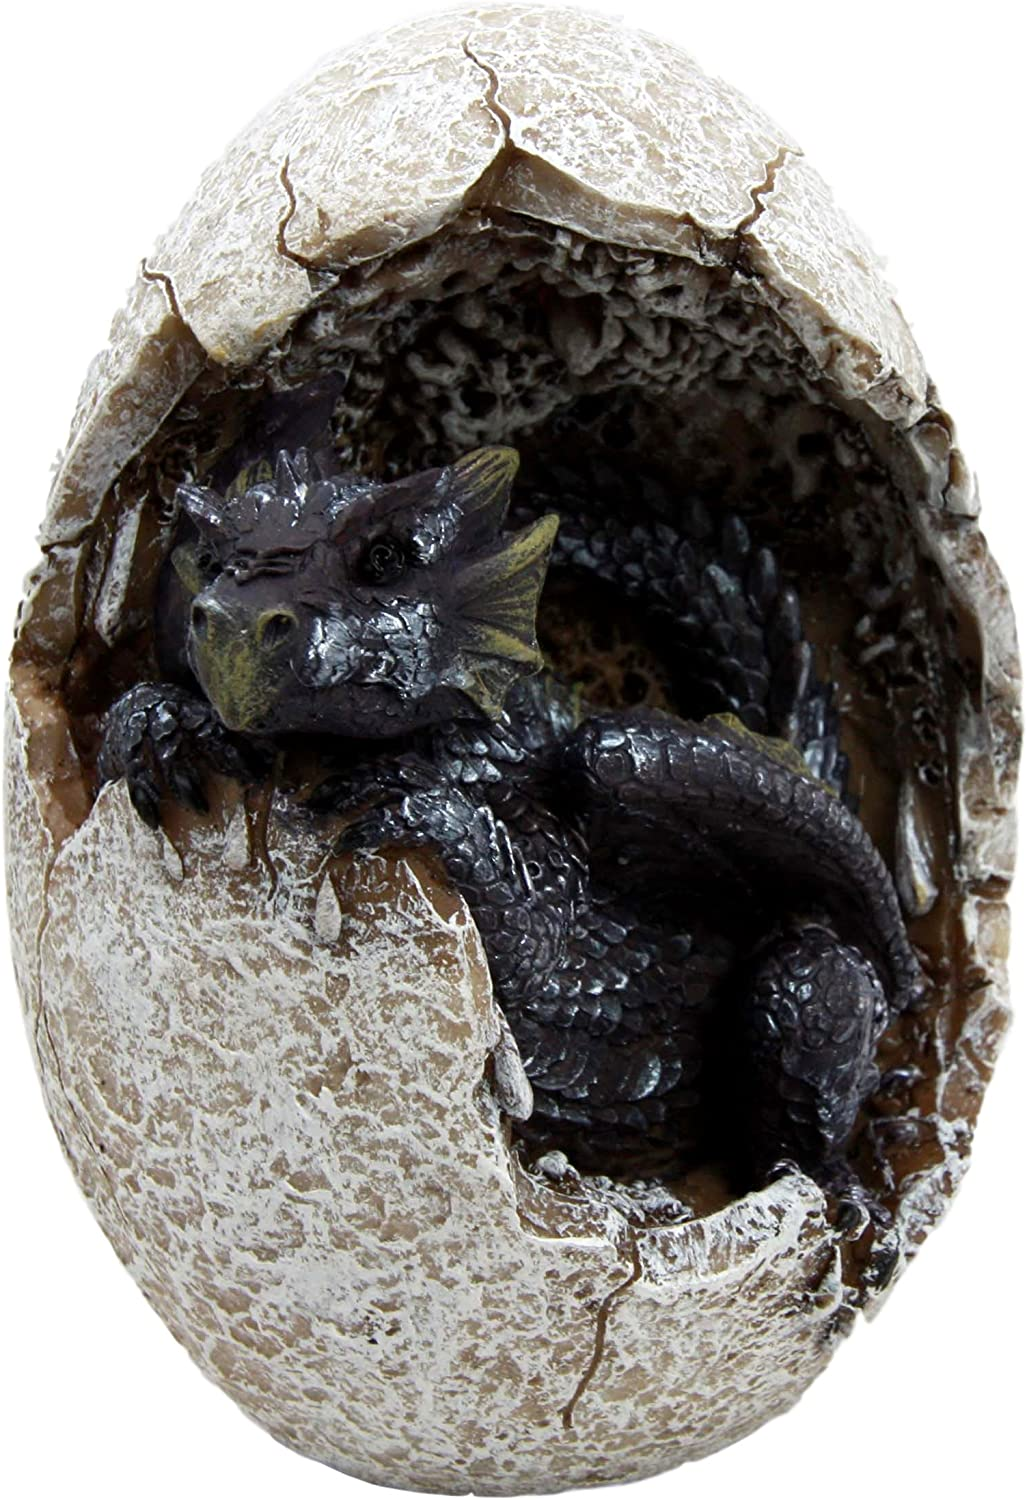 Ebros Gift Fossil Twilight Onyx Dragon Hatchling Breaking Out of Egg Shell Decorative Figurine Dungeons and Dragons Collectible Figurine Museum Like Eggs Decor Medieval Renaissance Theme